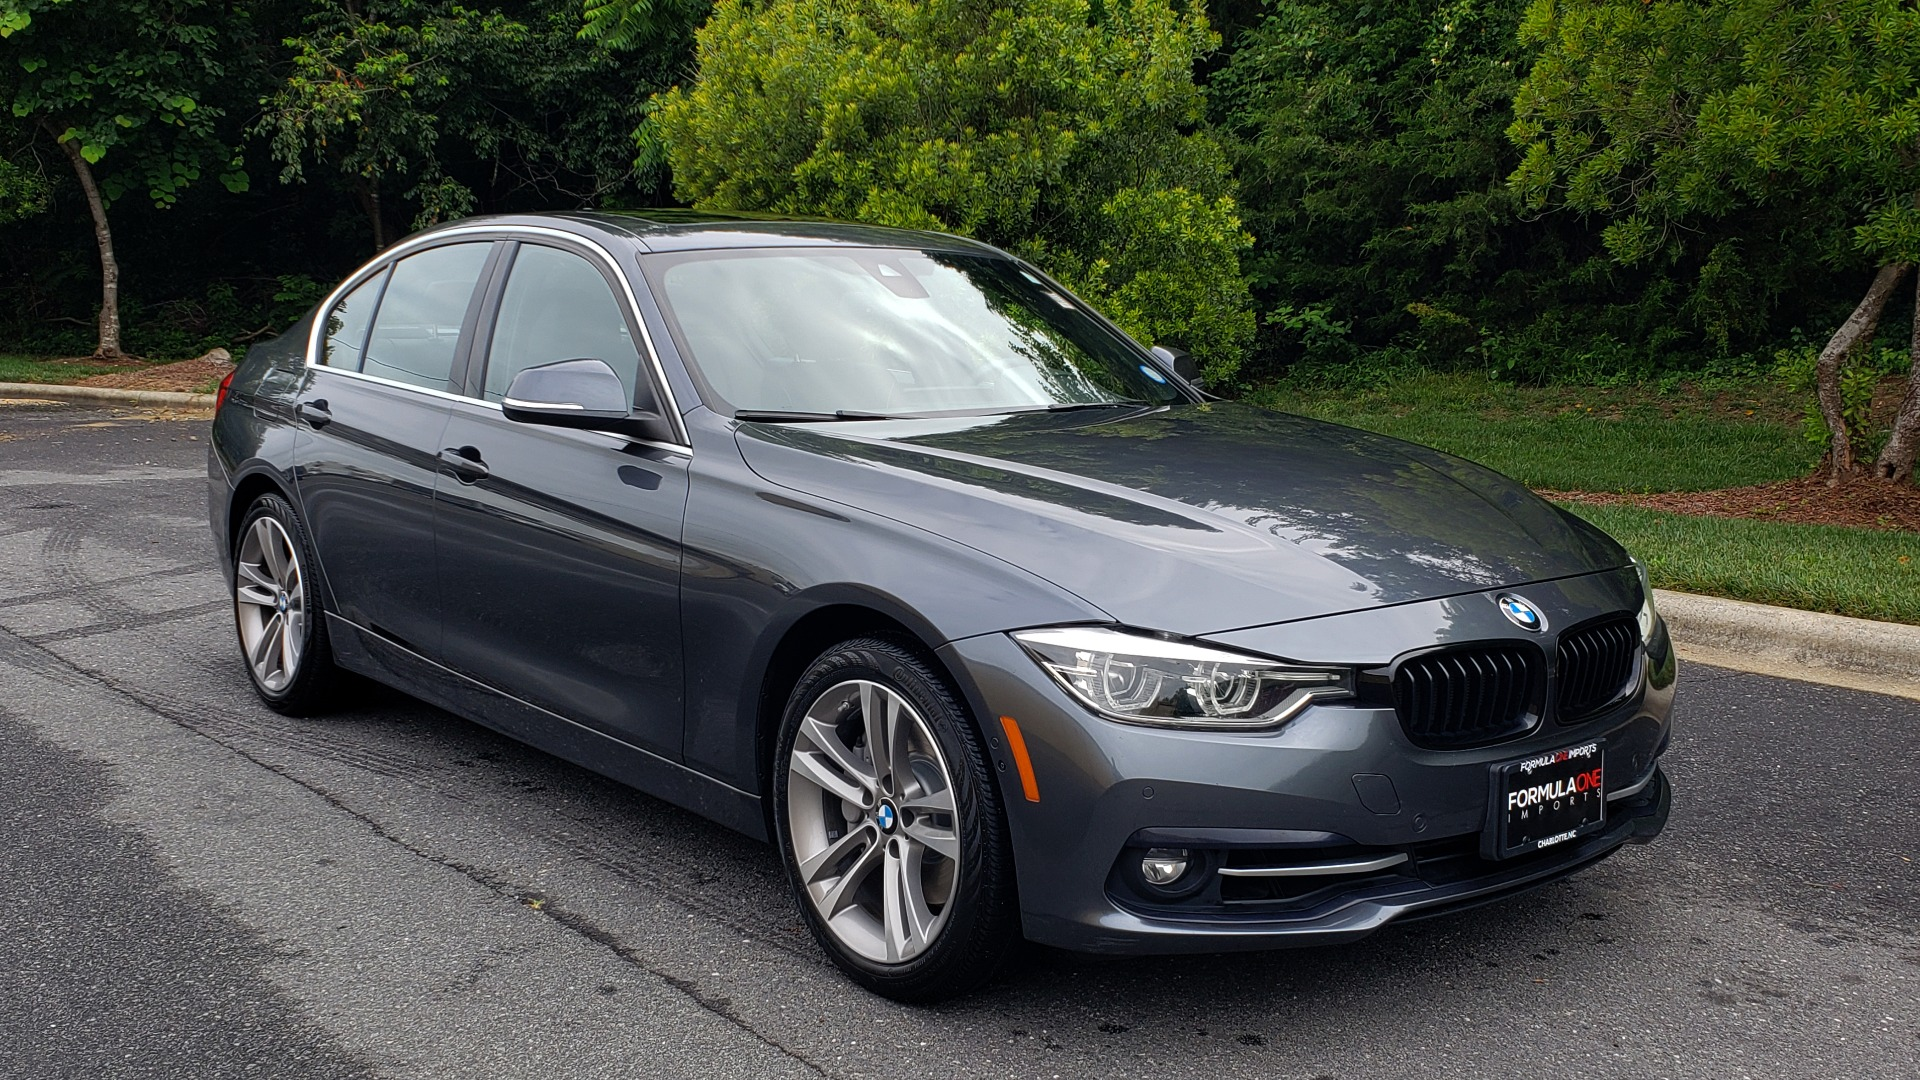 Used 2017 BMW 3 SERIES 340I XDRIVE SPORT / NAV / DRVR ASST PLUS / PARK ASST / CLD WTHR for sale $28,995 at Formula Imports in Charlotte NC 28227 4